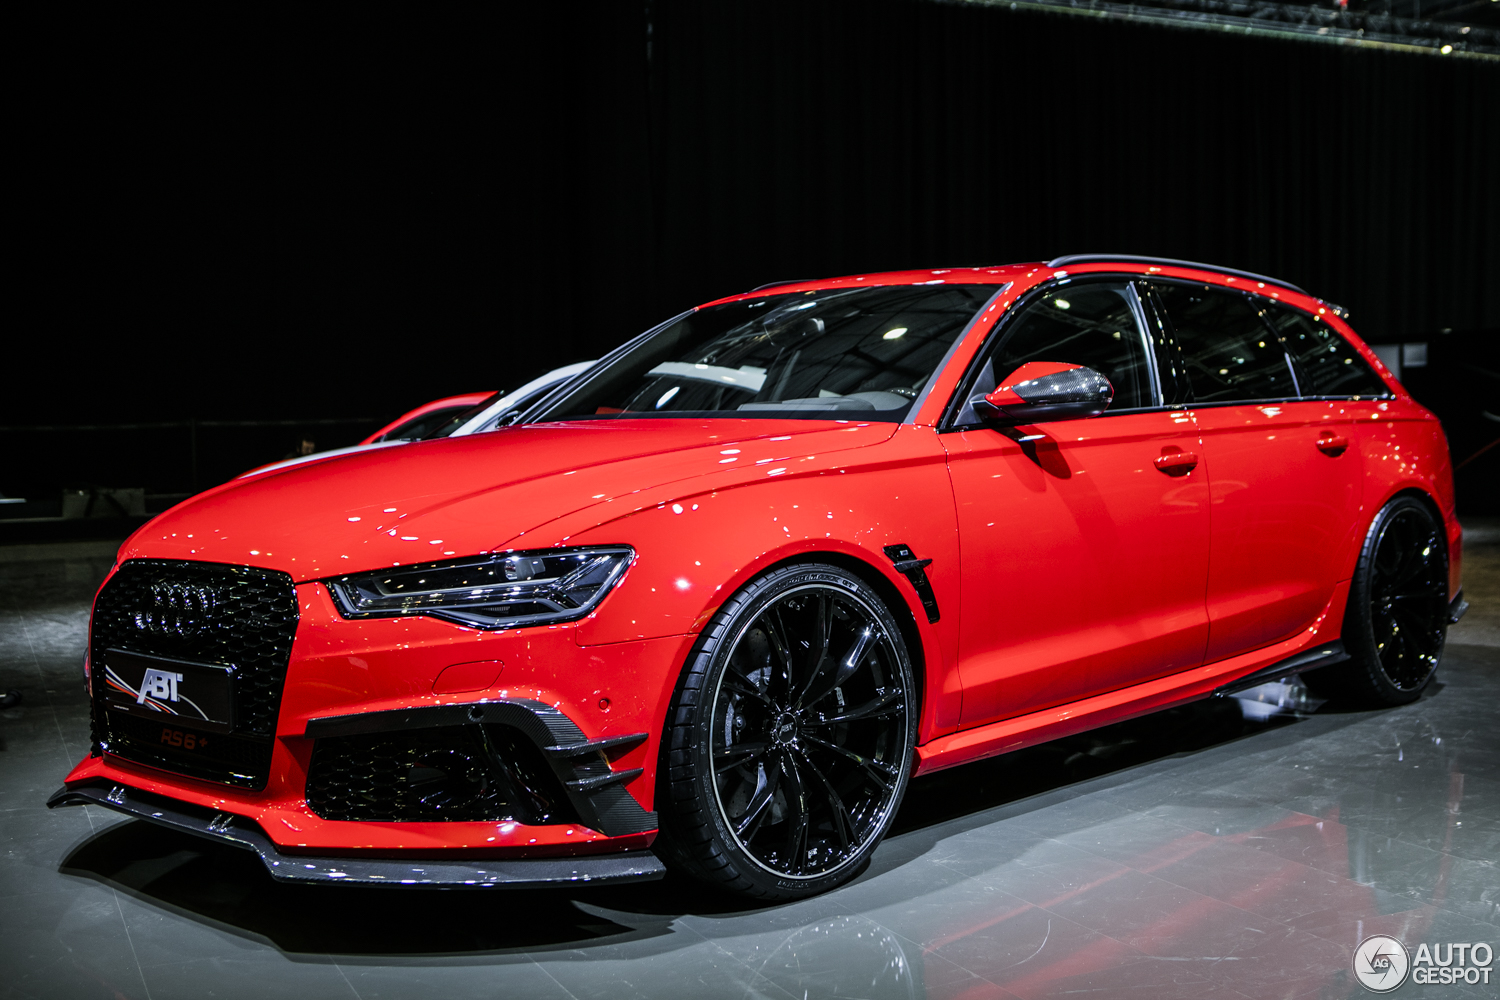 2017 abt audi rs 6 plus 705hp car. Black Bedroom Furniture Sets. Home Design Ideas